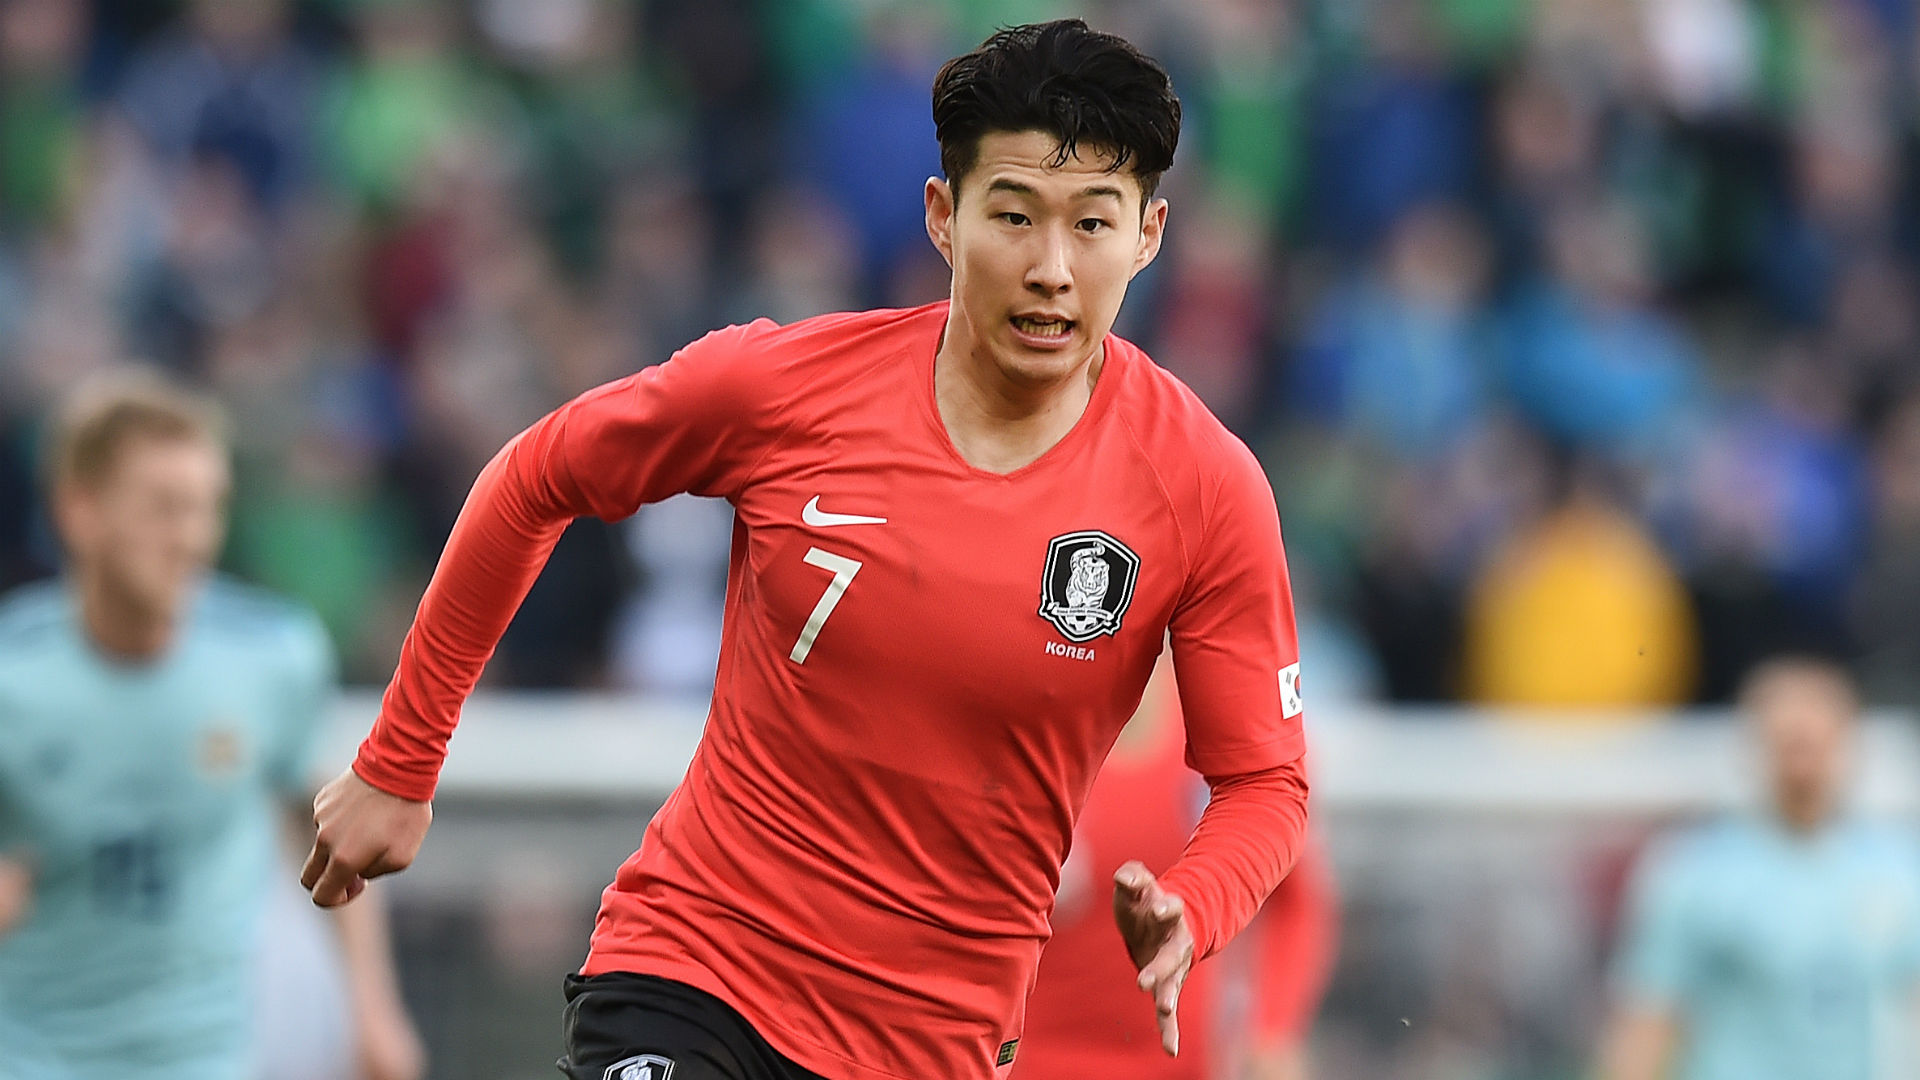 10 years since Heung-Min Son scored his first international goal against India